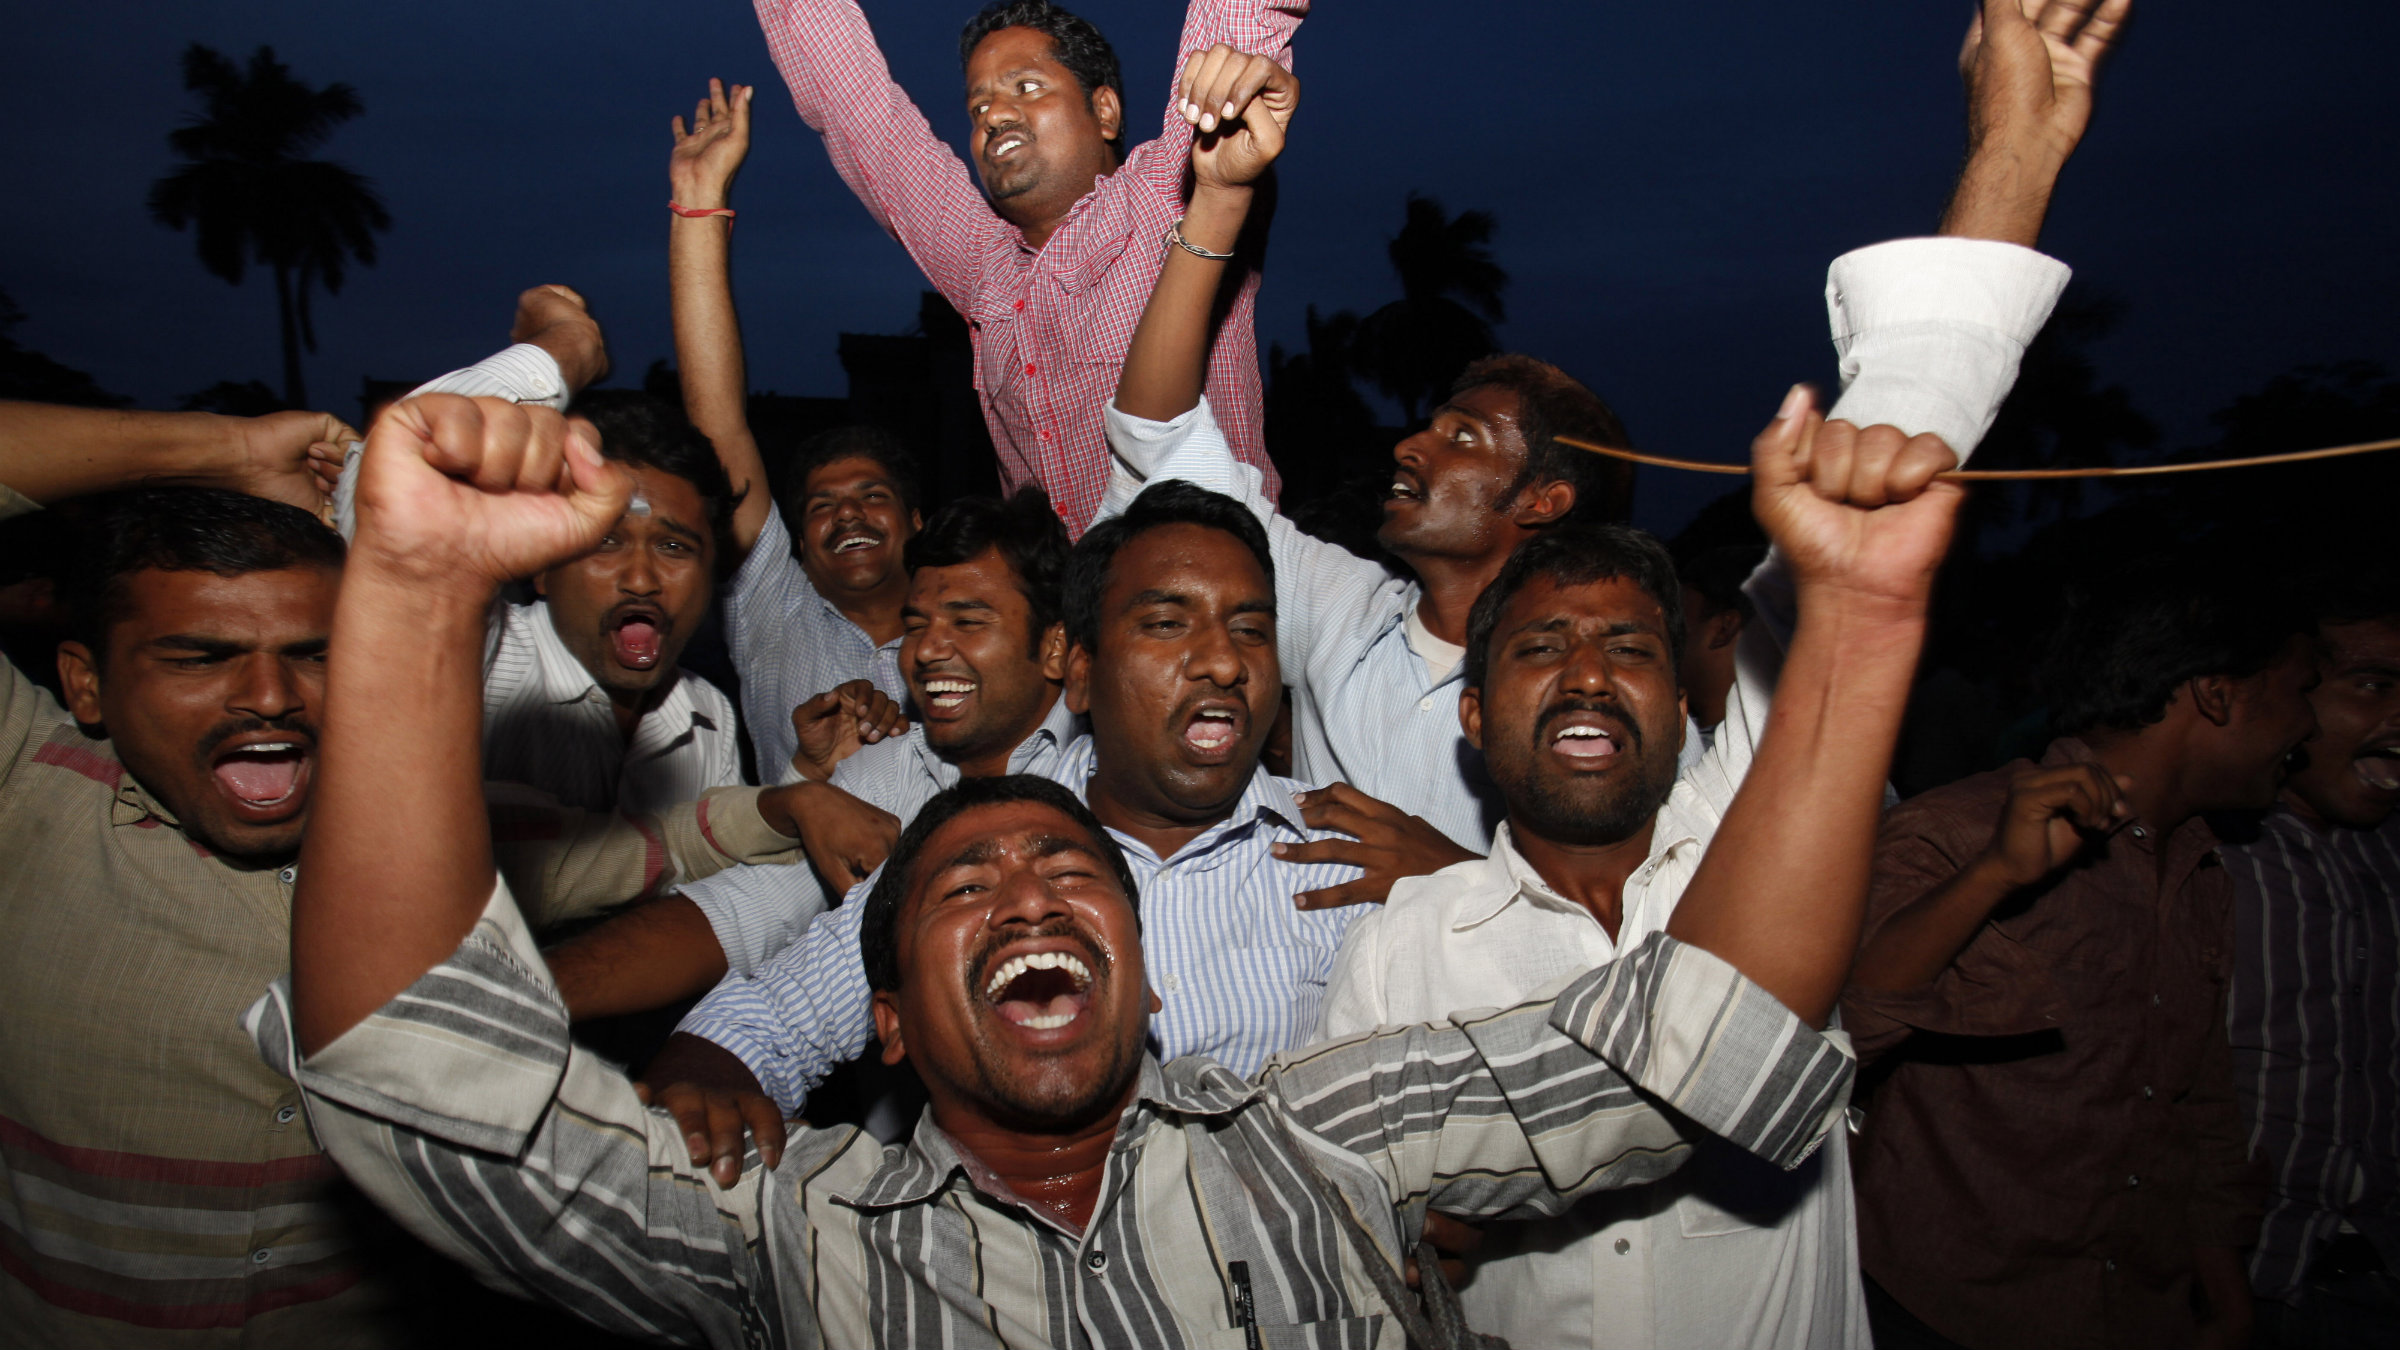 Students of Osmania University celebrate after India's ruling coalition endorsed the creation of the new state.